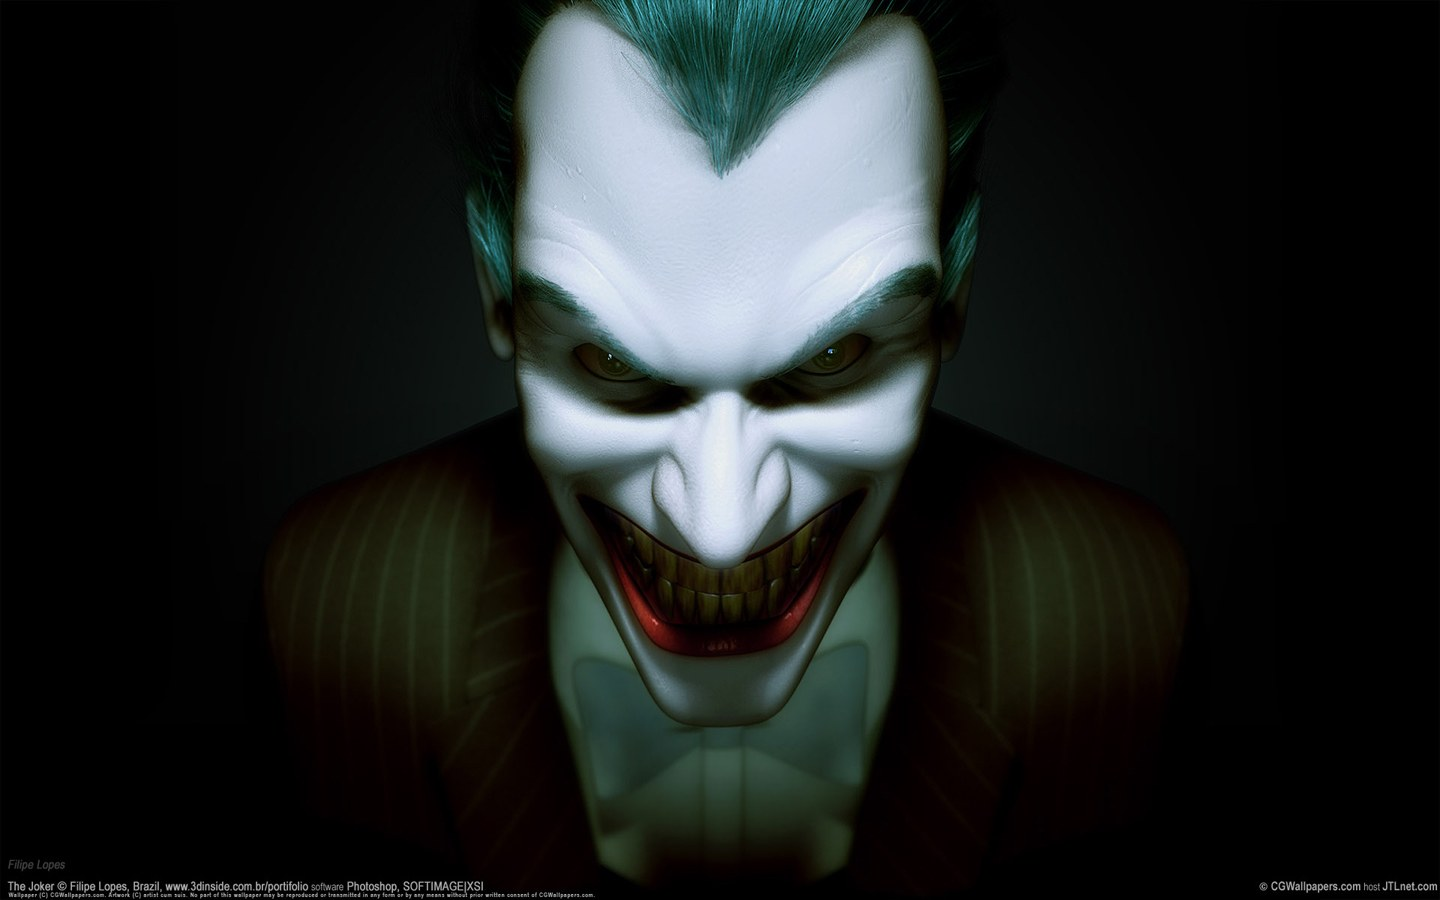 The 3d Joker for Computer Wallpapers   HD Wallpapers 57045 1440x900